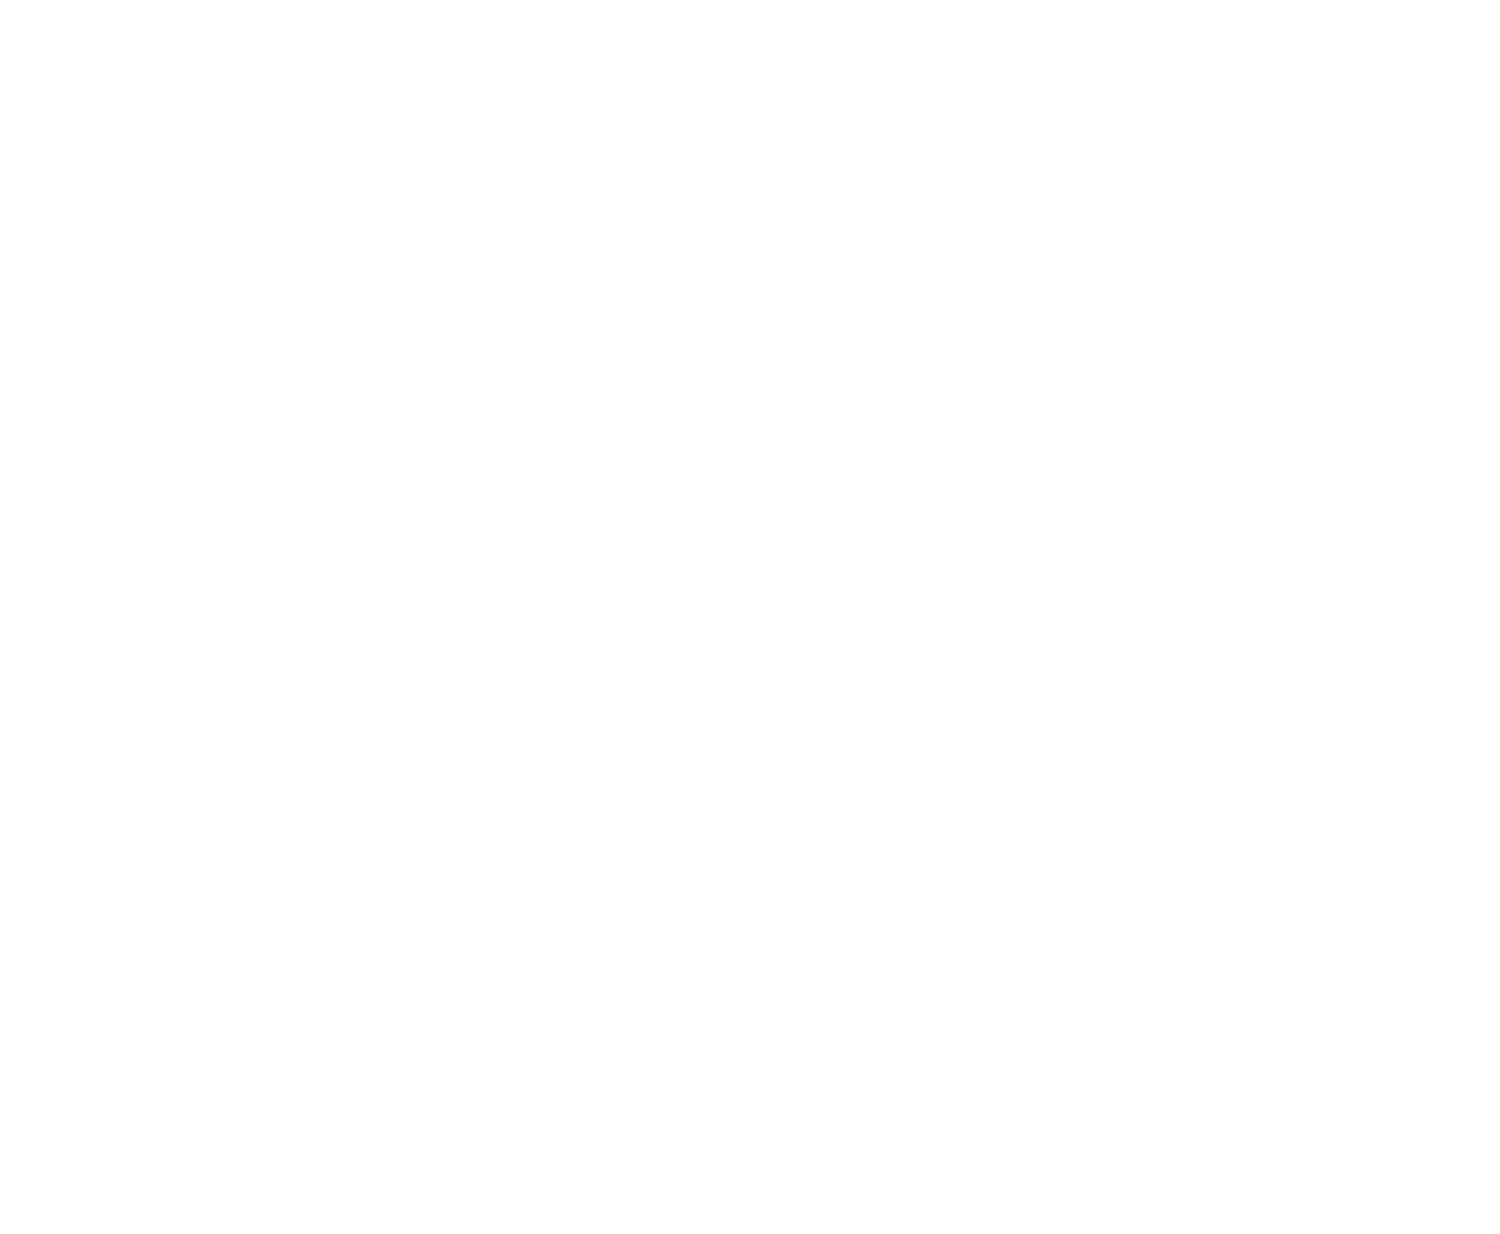 Point Me around the World